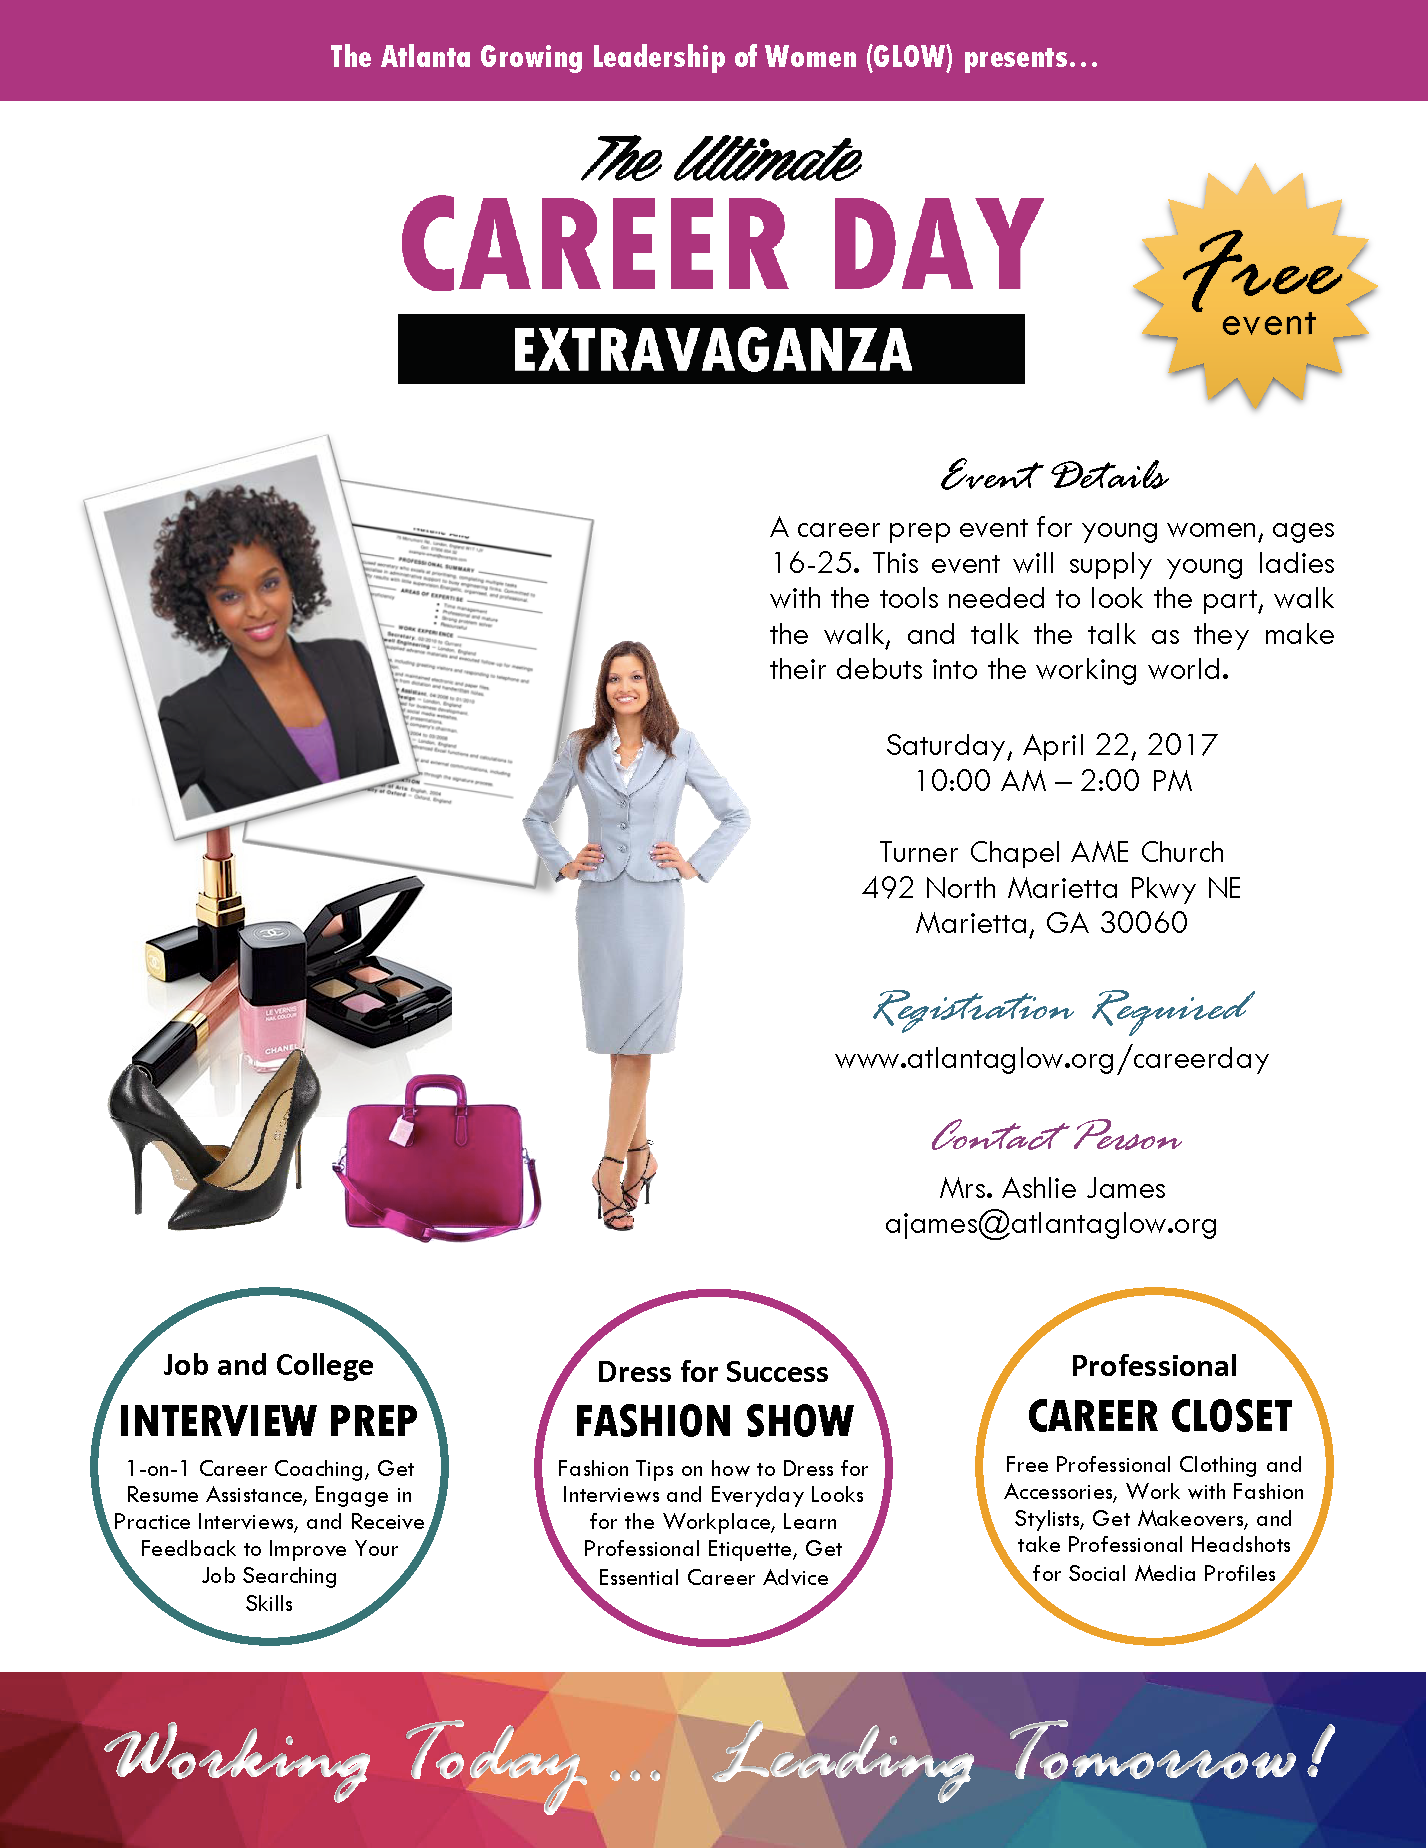 career day extravaganza registration sat apr at  are not just intended to get them there but also to equip them the support and tools they need to build sustainability and long term success